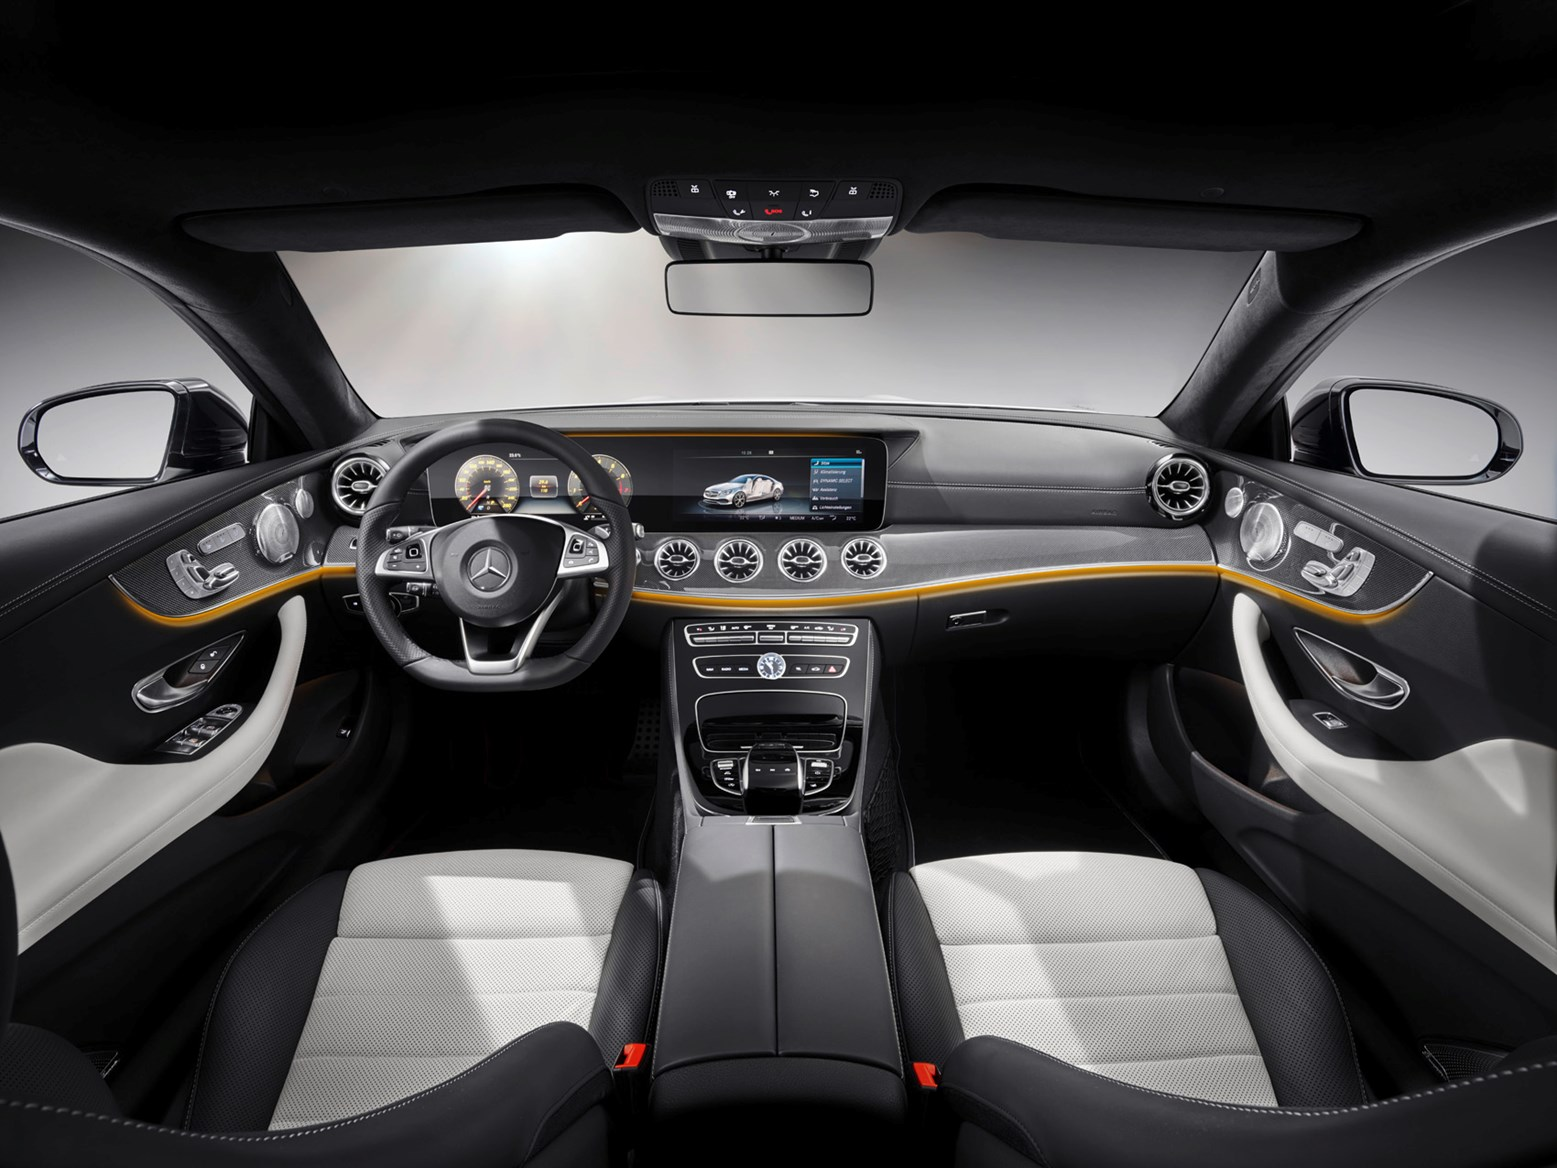 Mercedes Benz 2017 E Cl Coupe Interior Detail